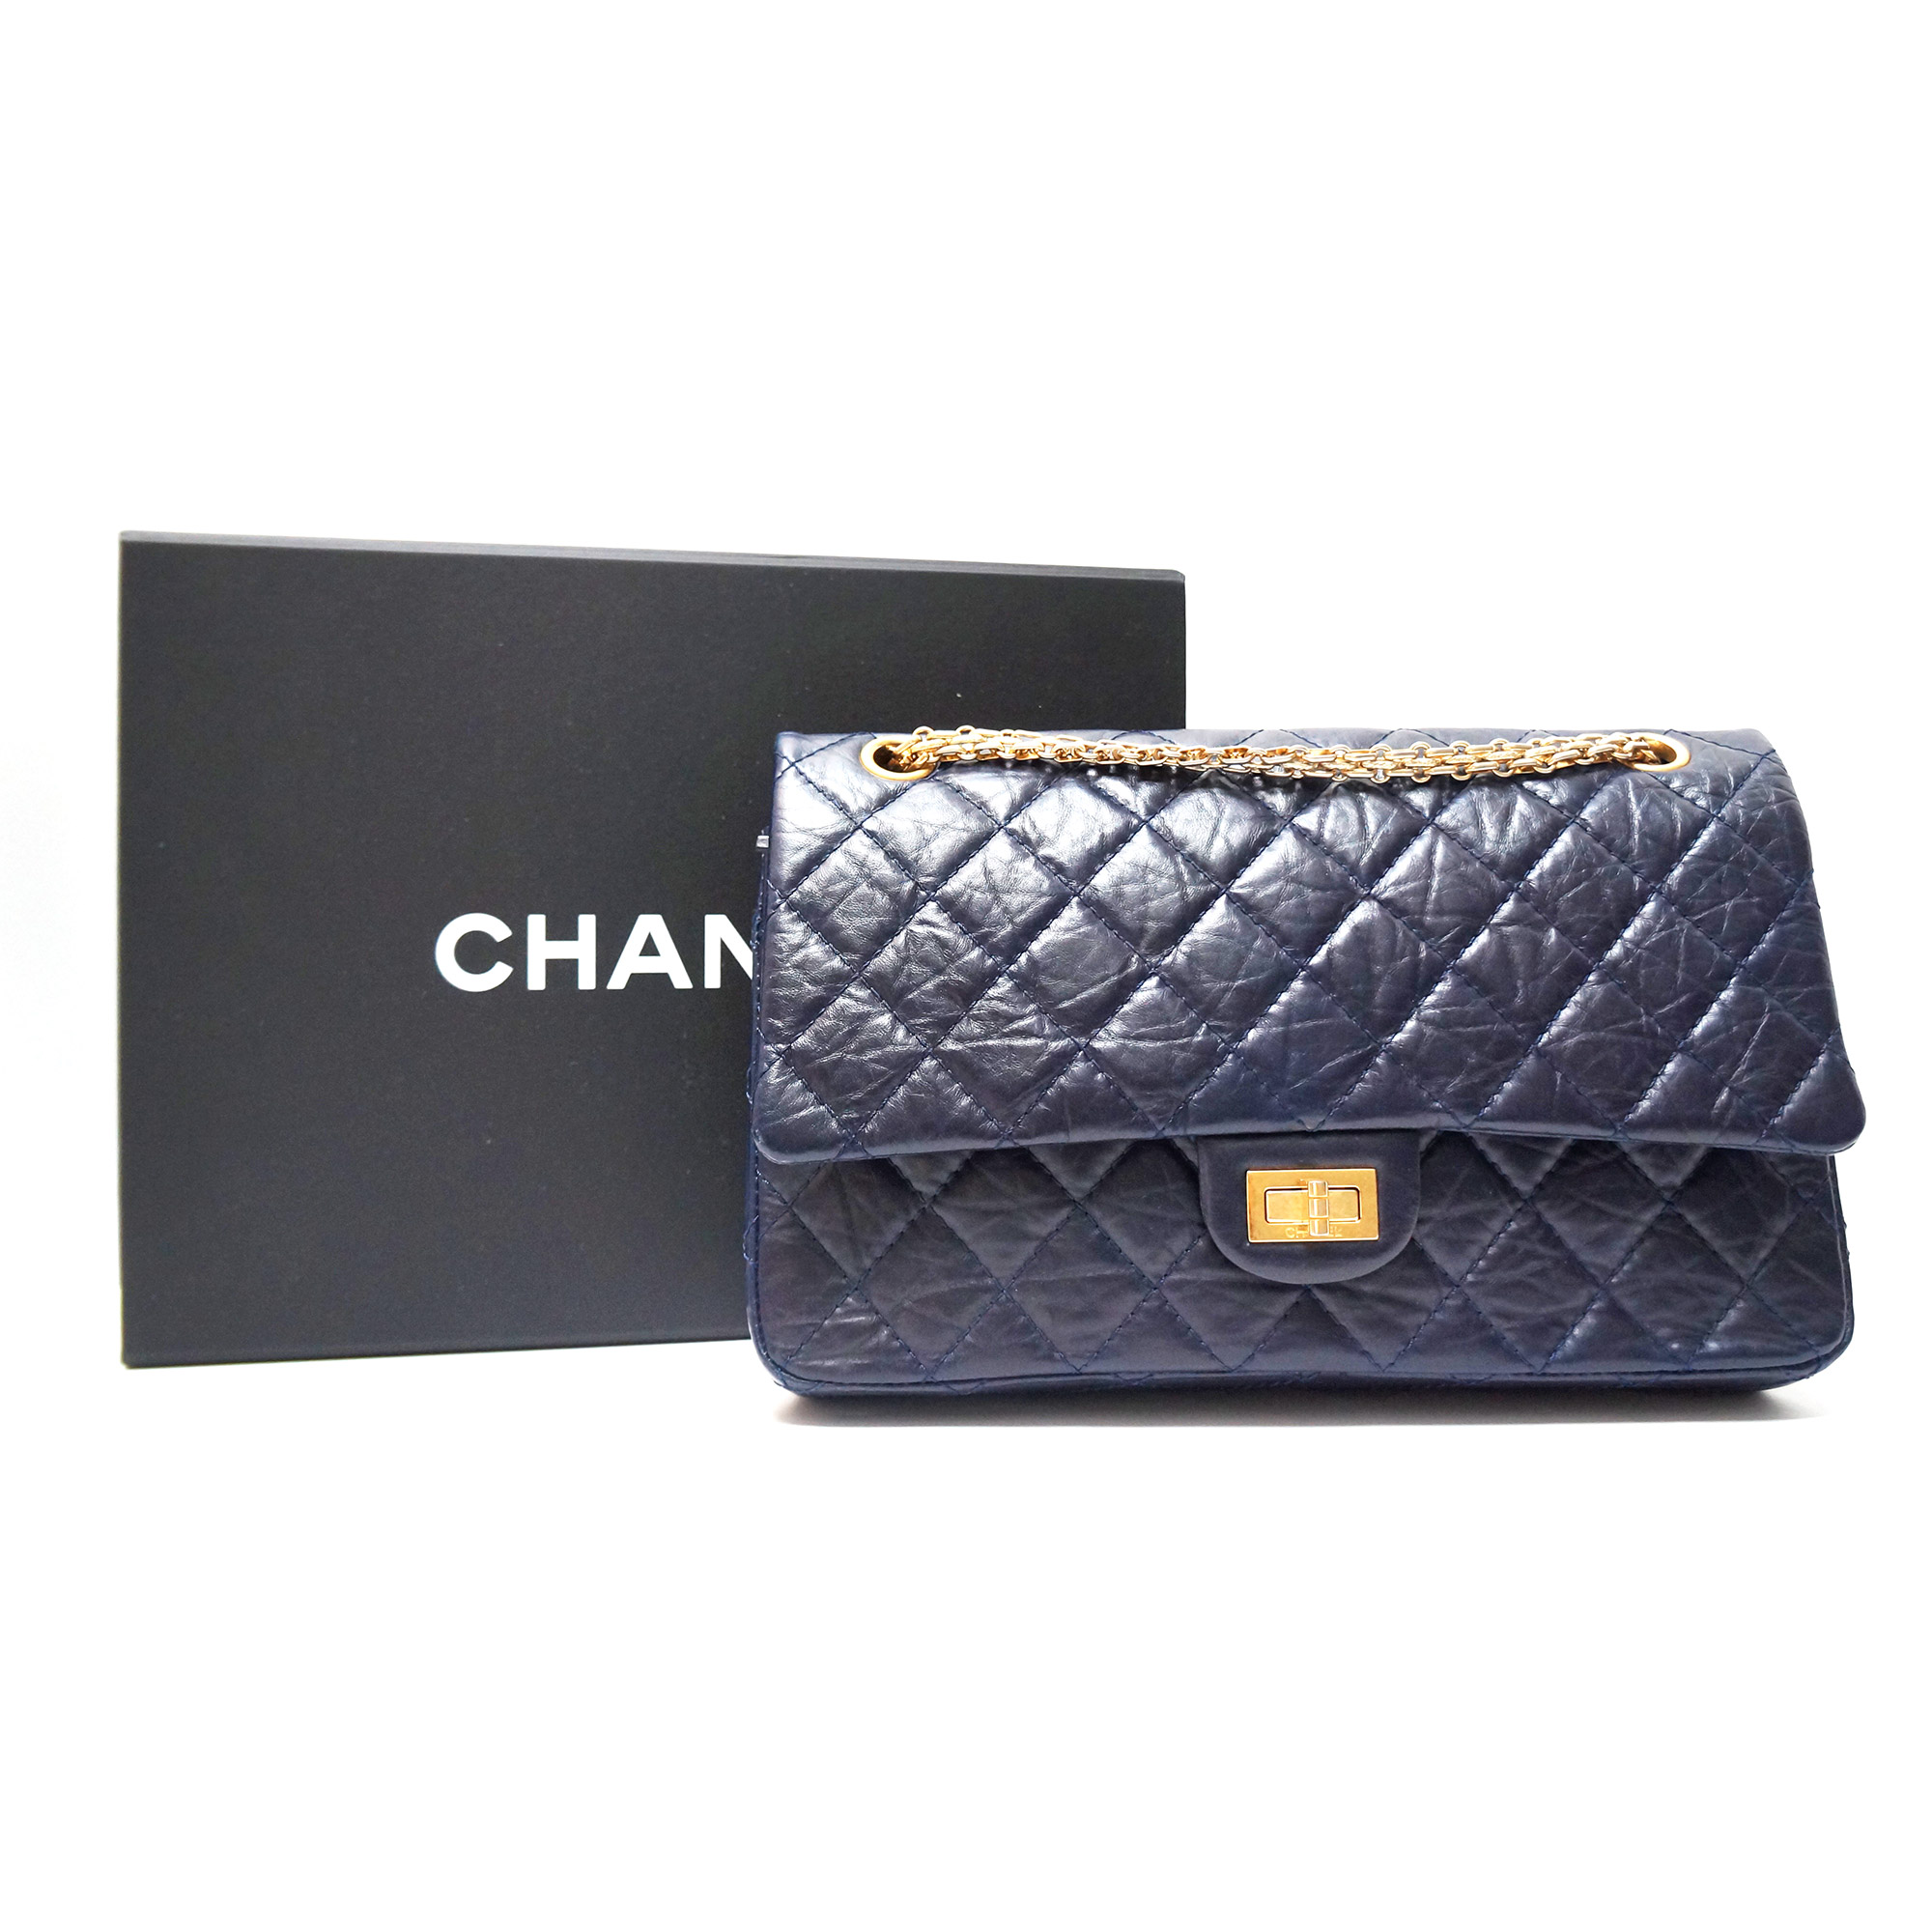 Chanel 2.55 Reissue Flap Bag Navy Aged Calfskin with Gold Hardware